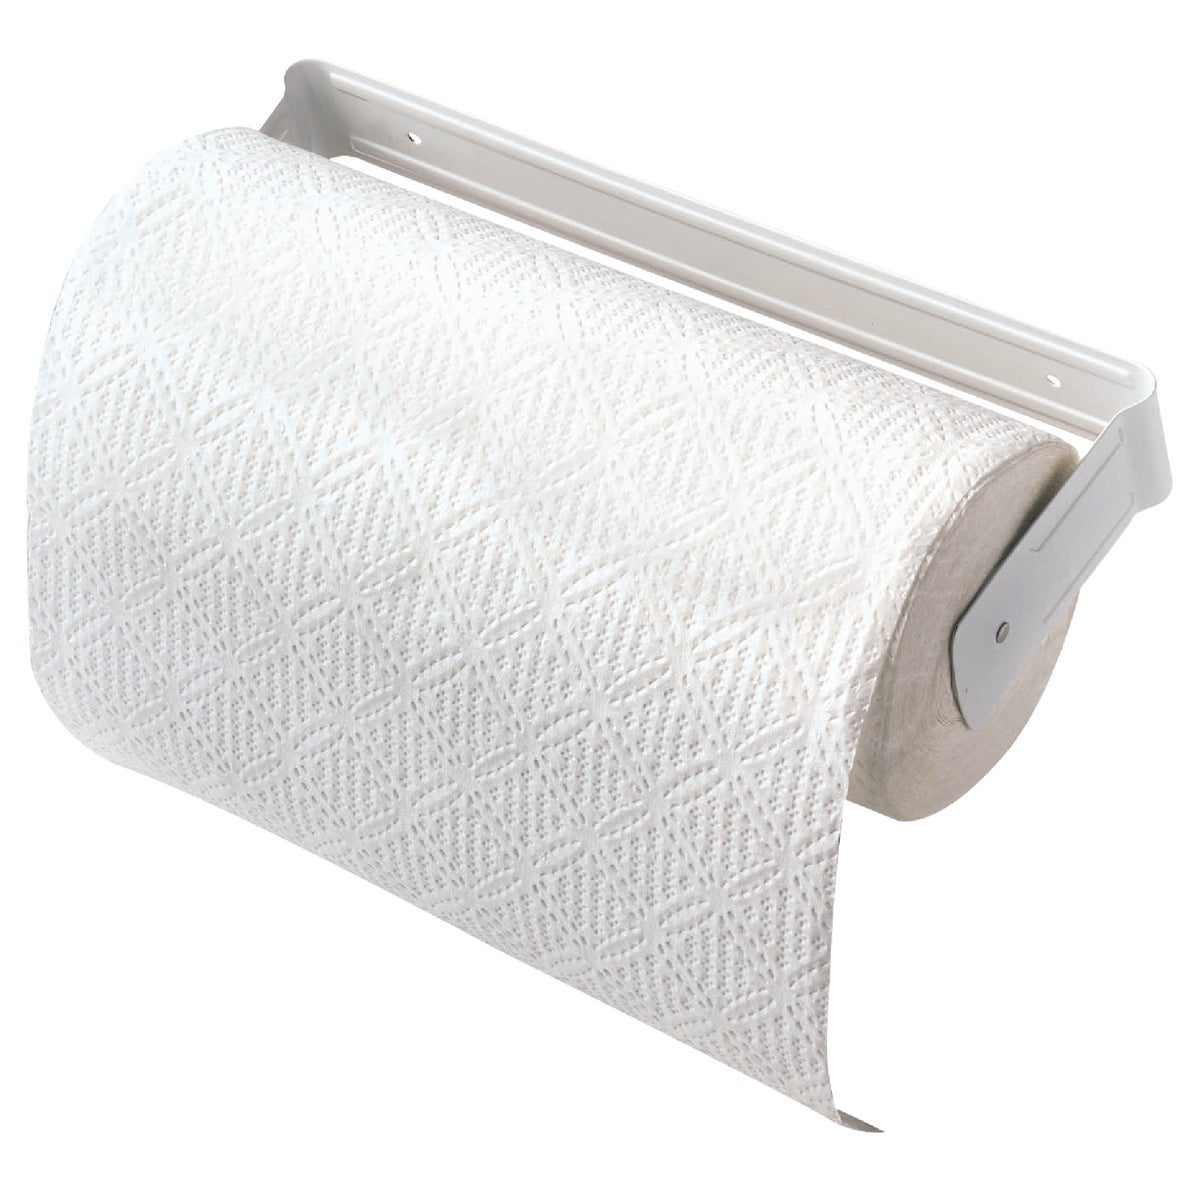 WHT PAPER TOWEL HOLDER - 48310 by Decko Bath